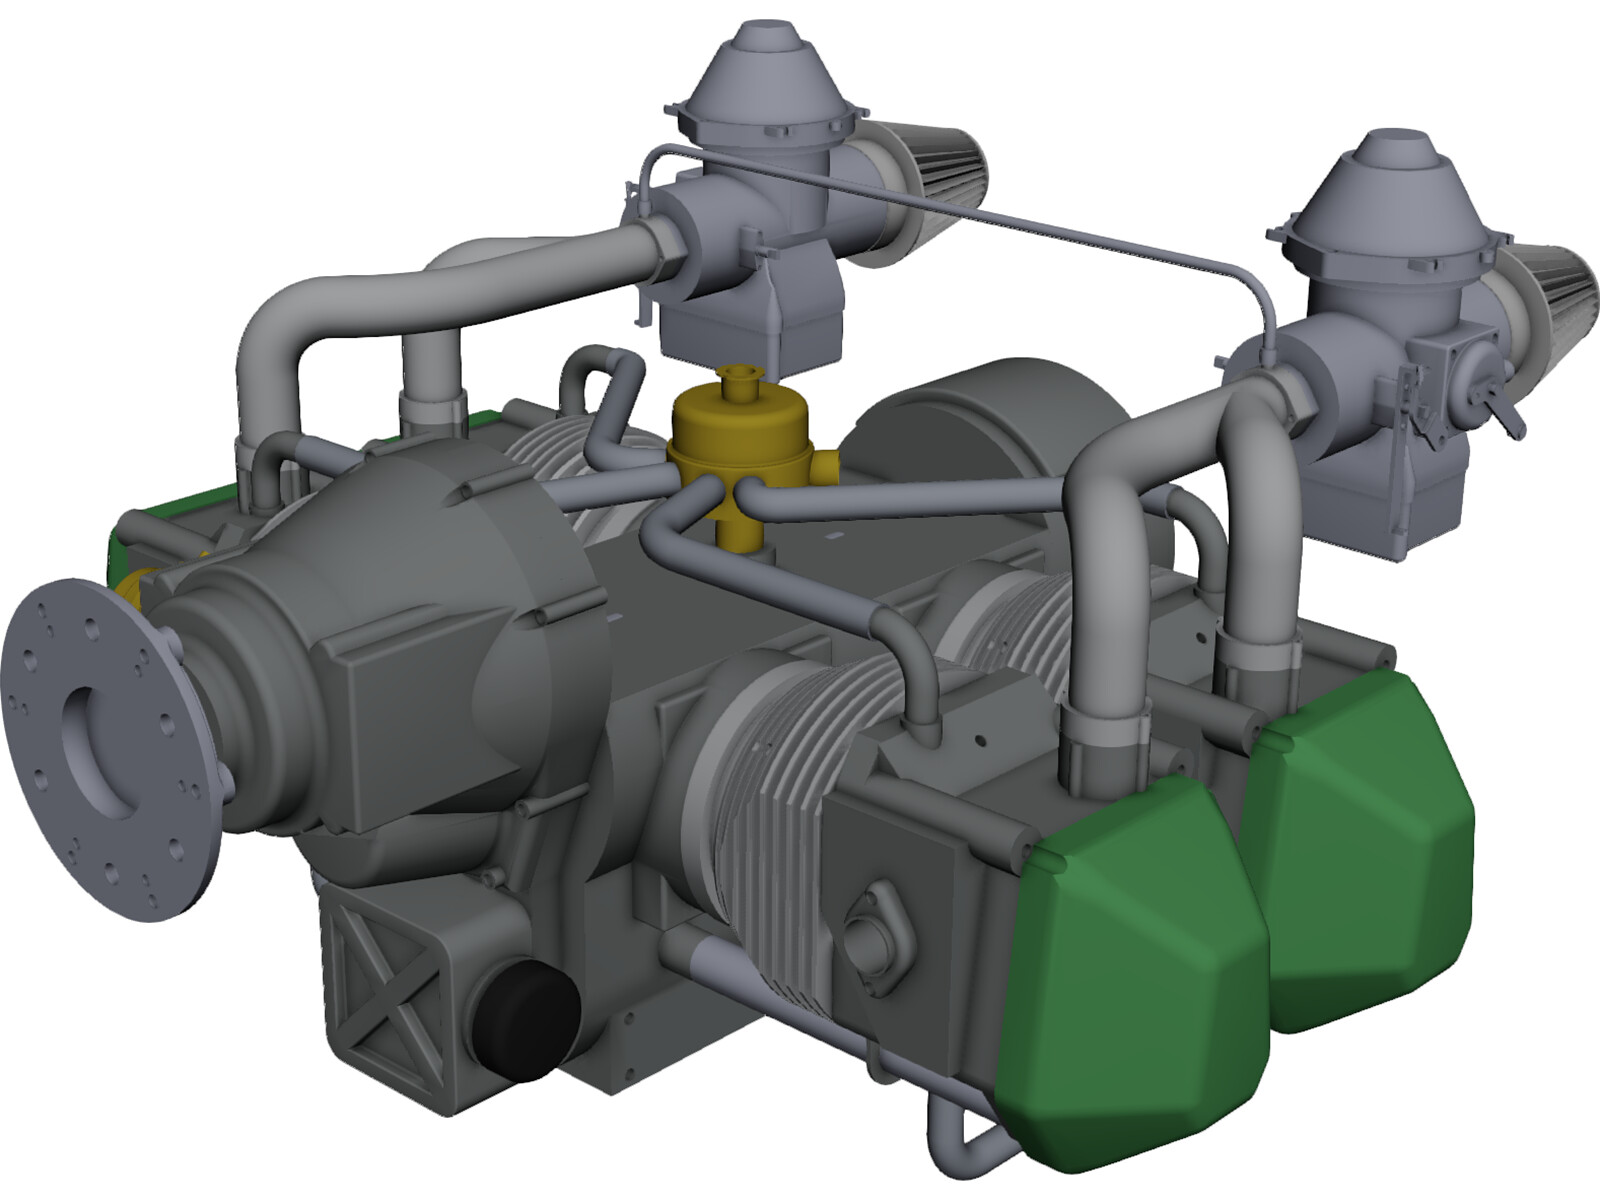 Rotax 912 Engine 3D CAD Model